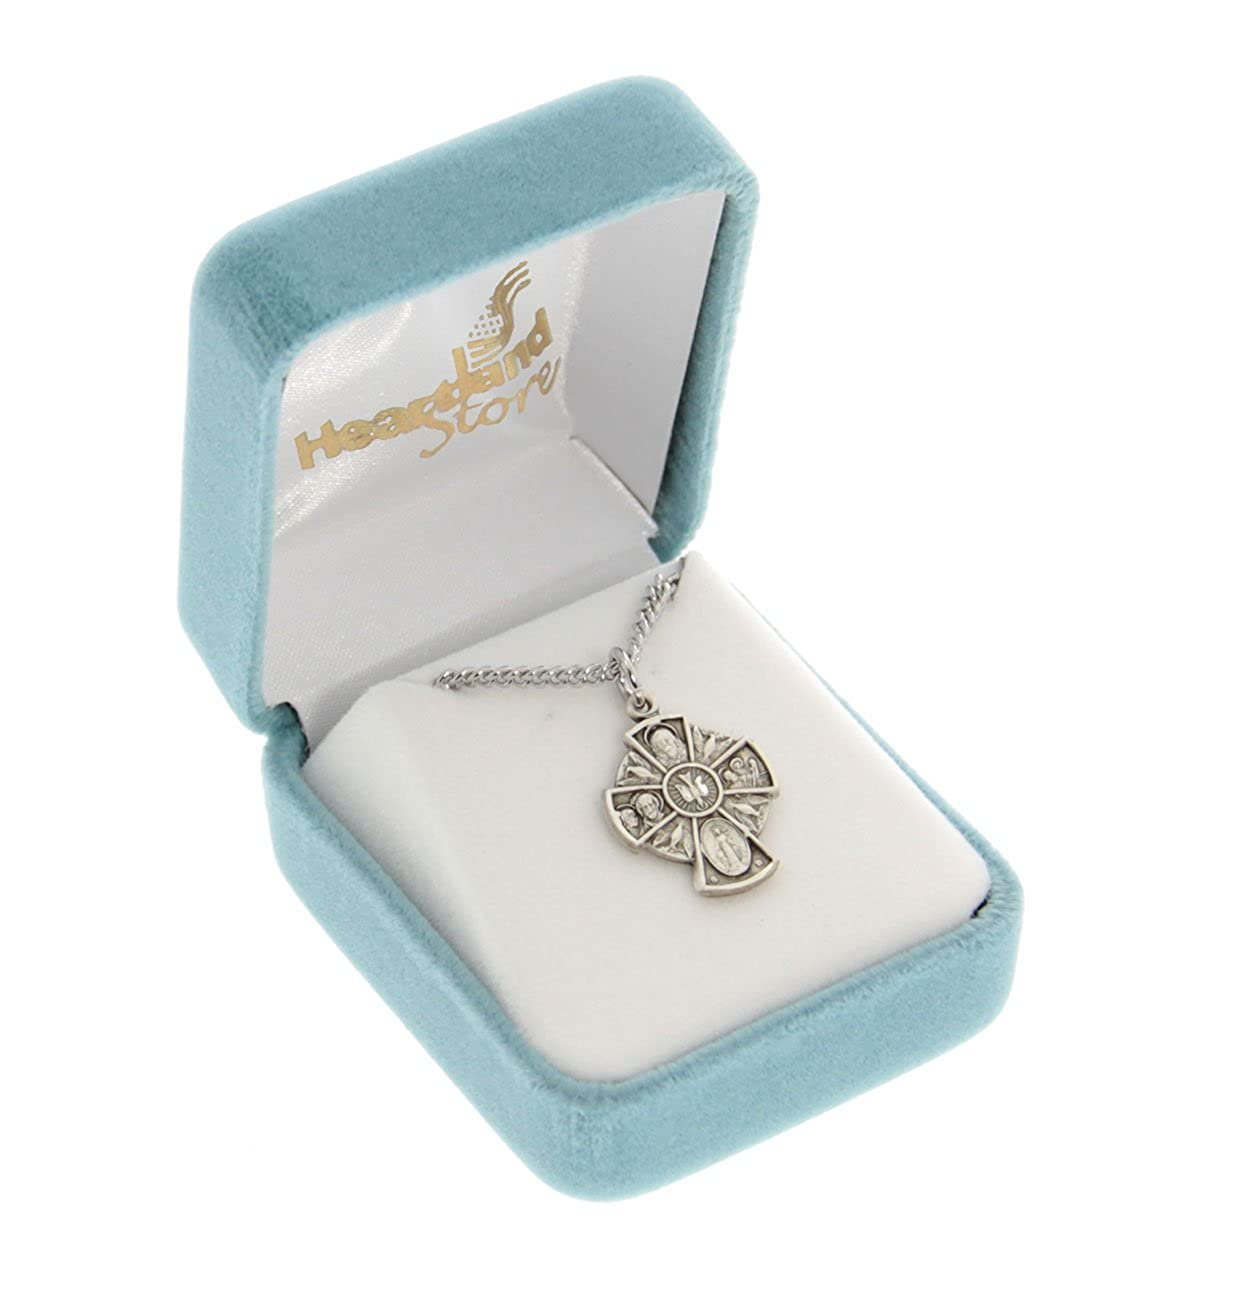 Heartland Womens Sterling Silver Holy Spirit 4-Way Cross Necklace Chain Choice Best Quality USA Made